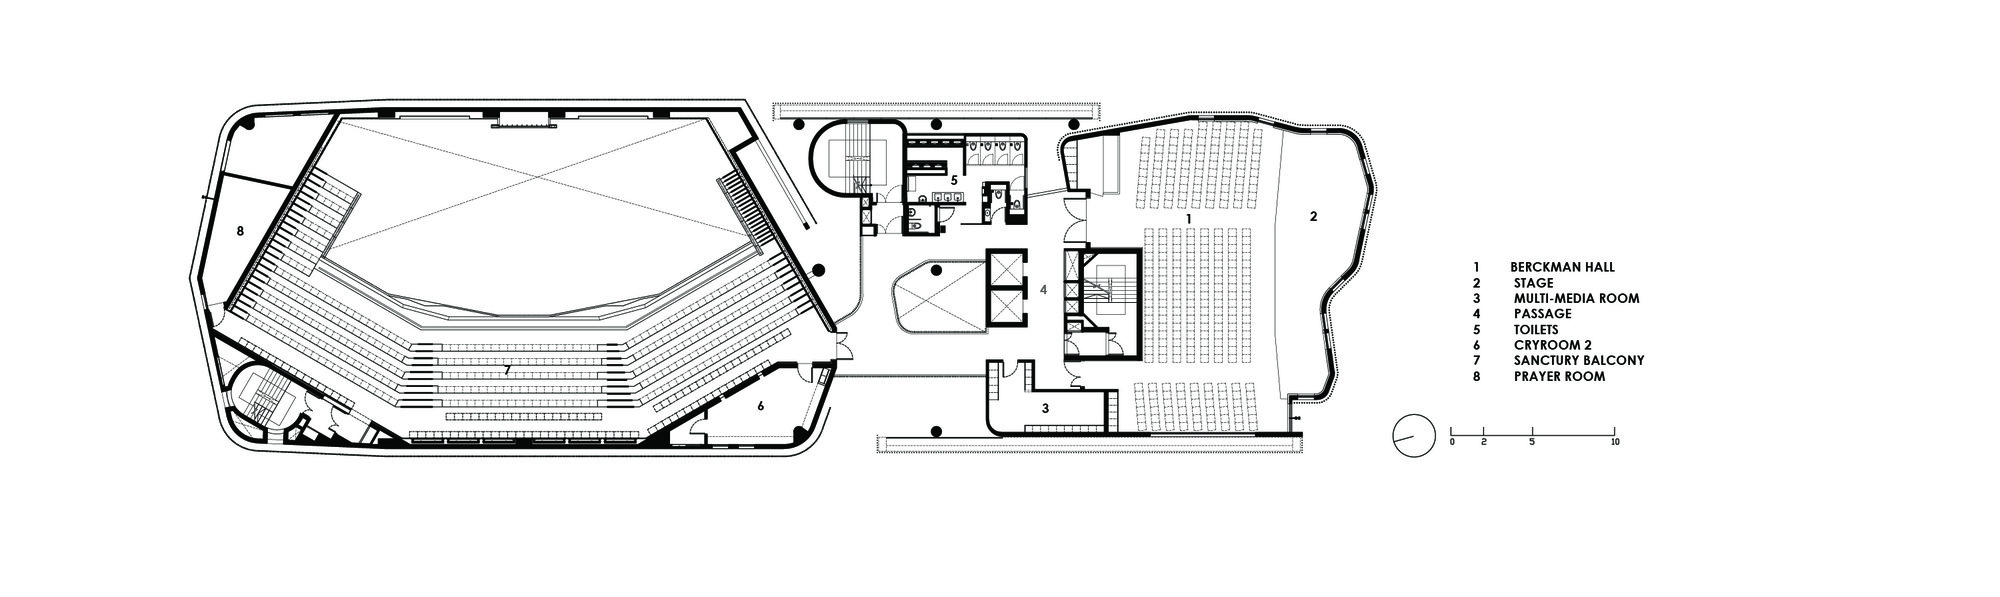 Christ Methodist Church K2ld Architects 12 16 Third Floor Plan